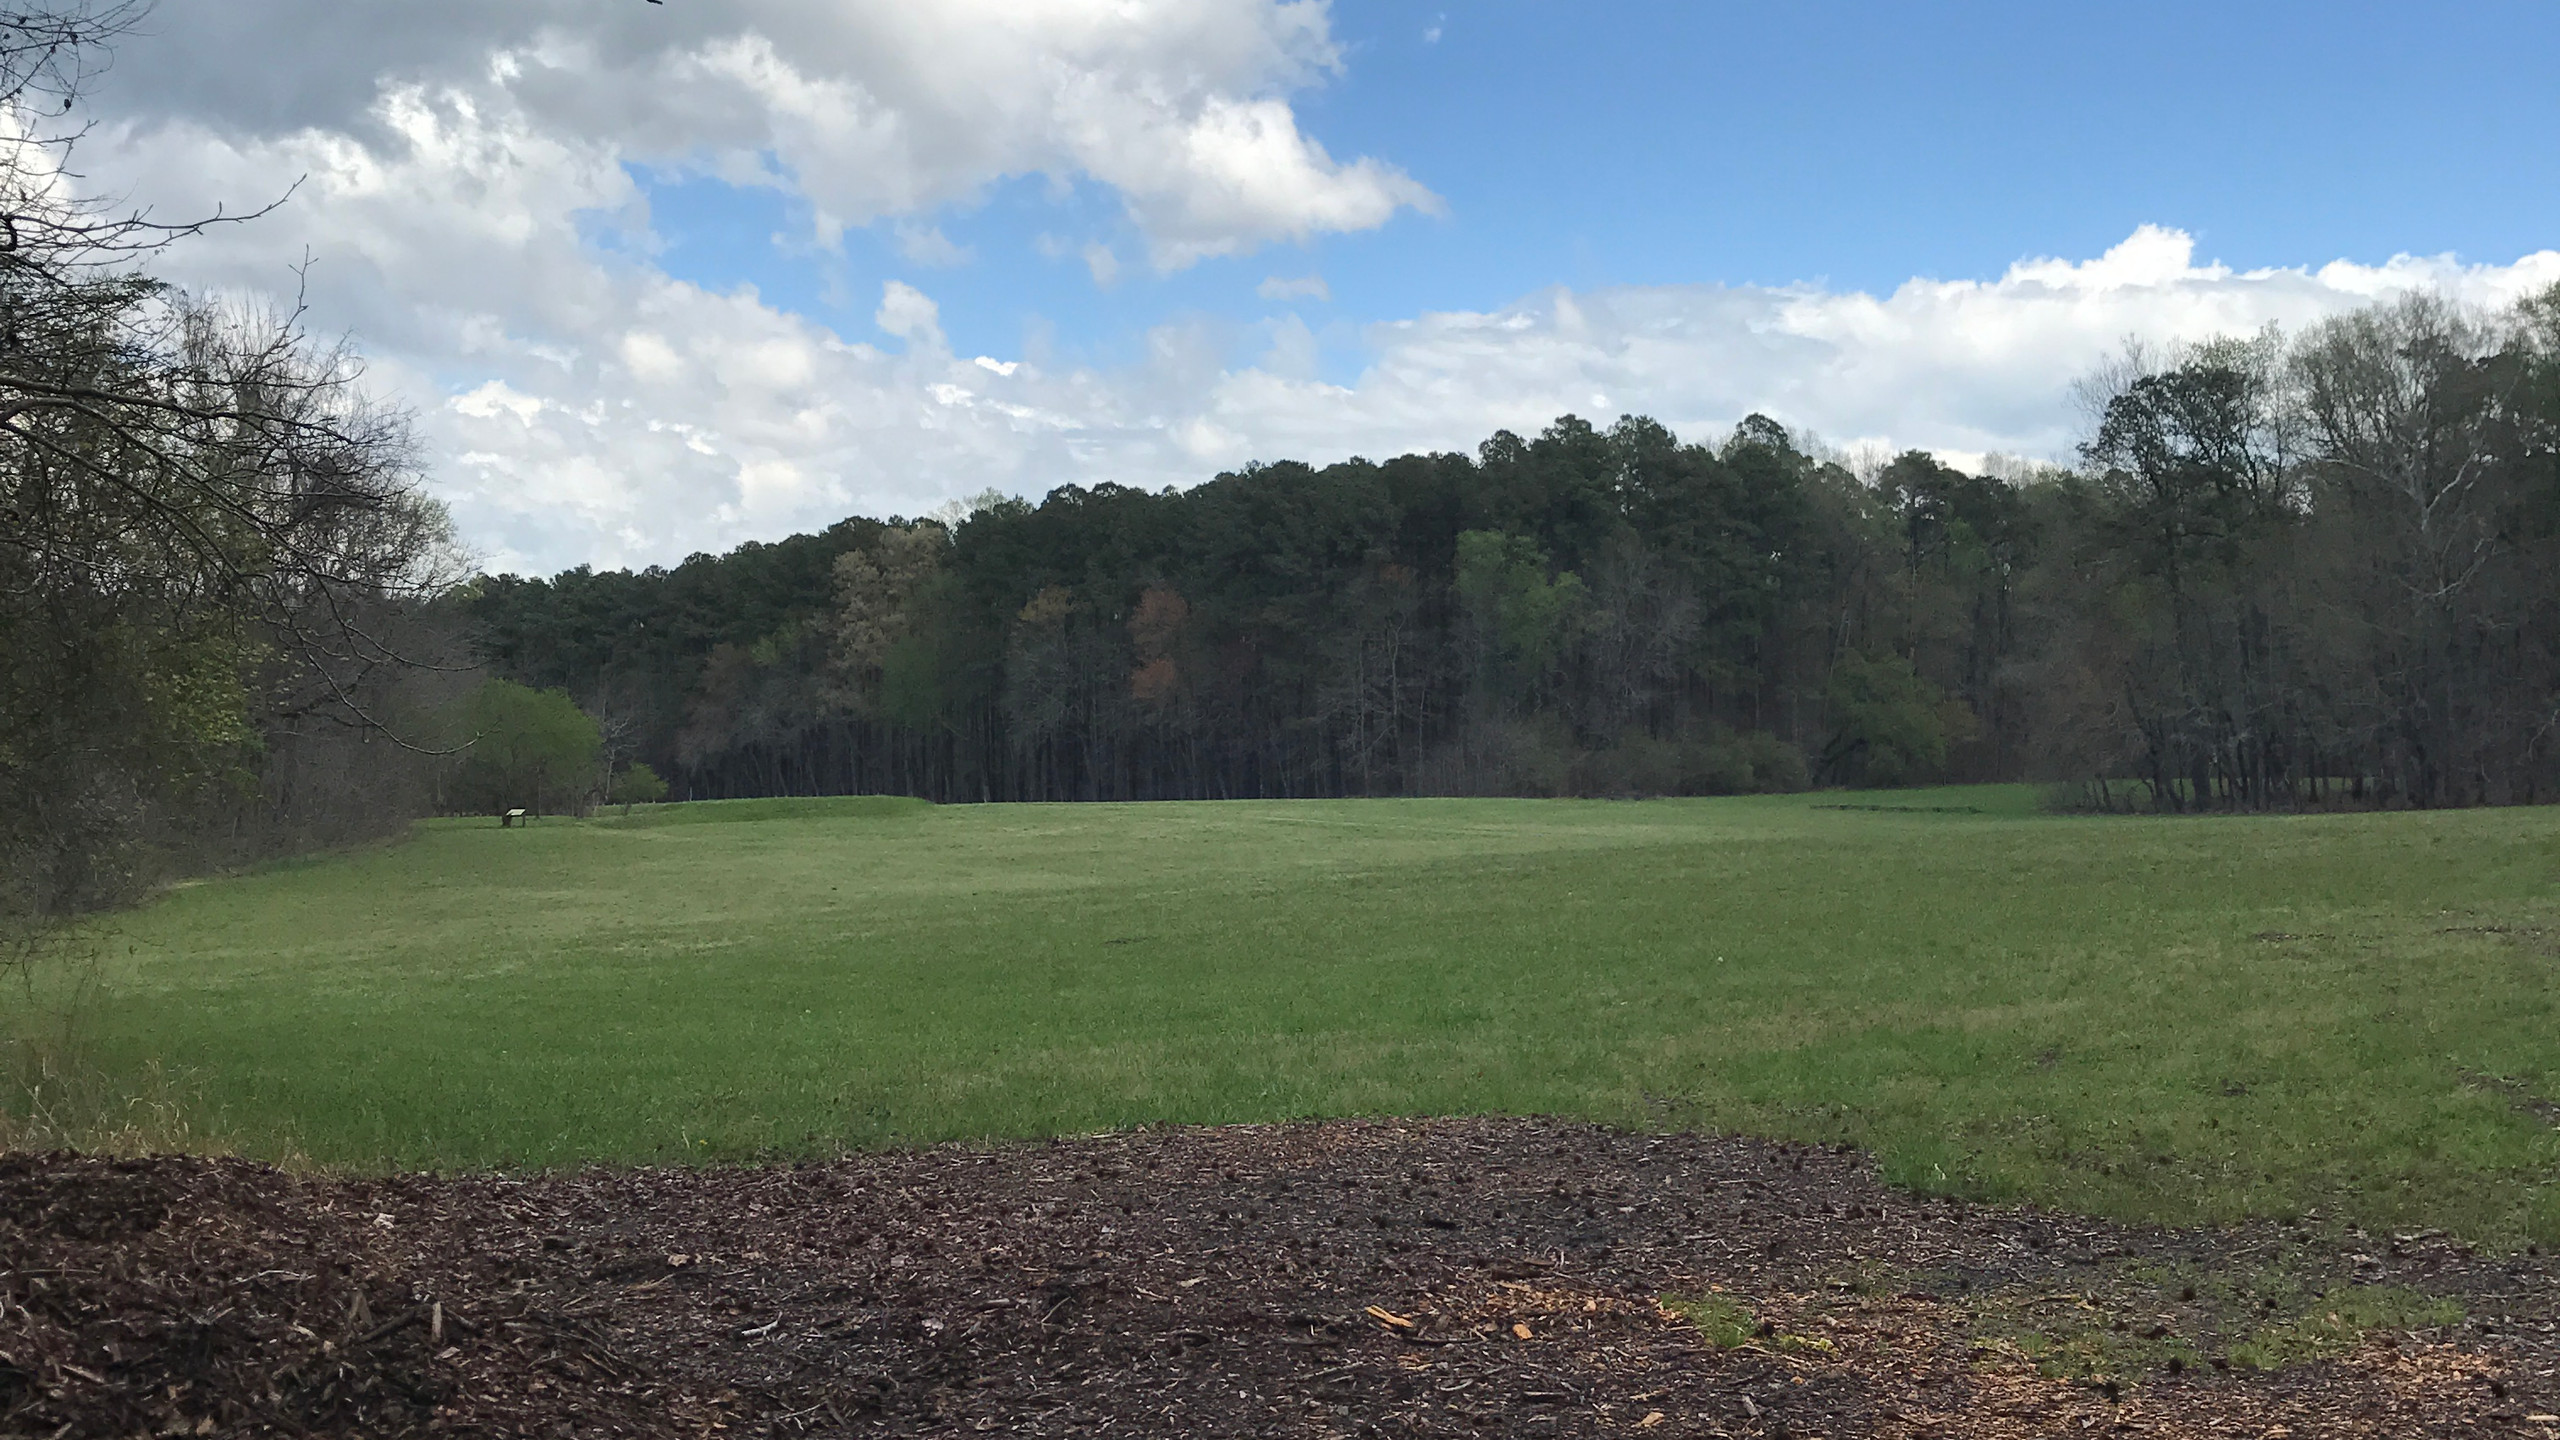 Site of Civil War Campgrounds